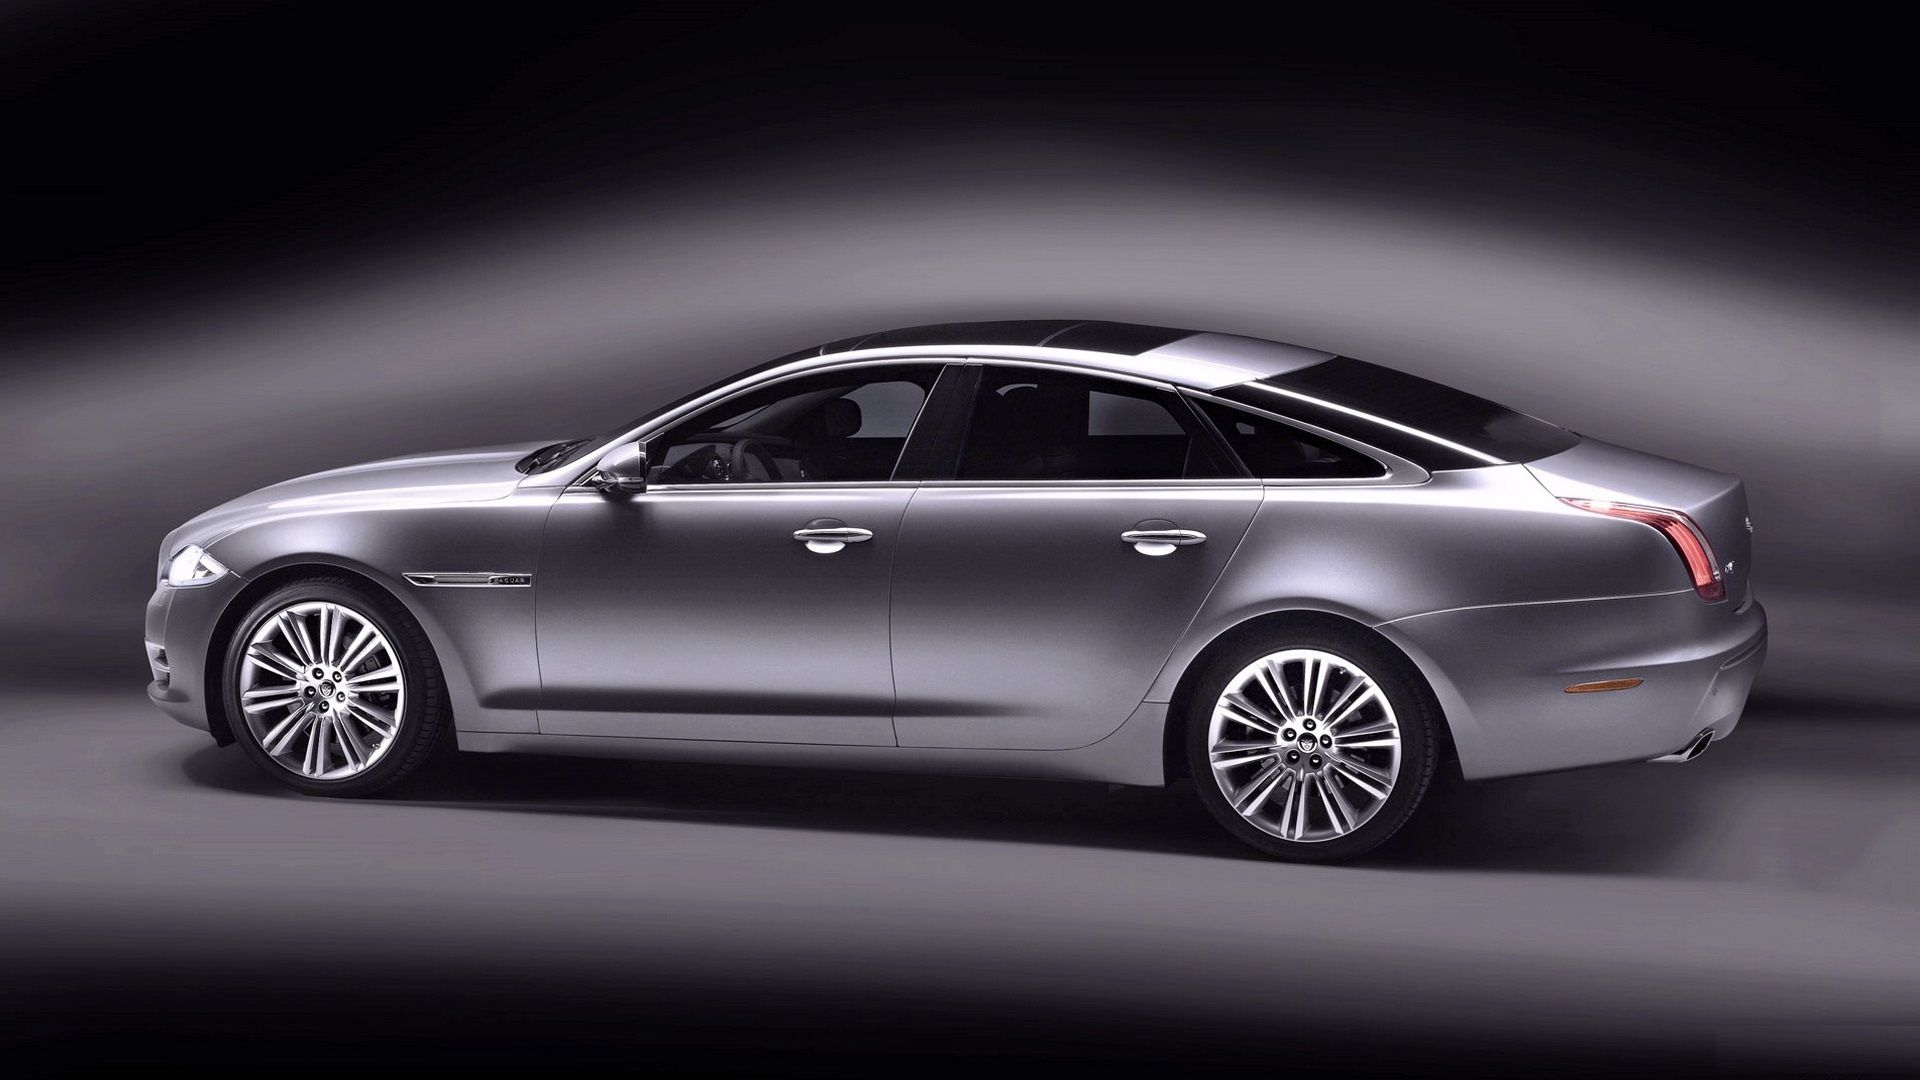 Jaguar Car Hd Wallpapers Jaguar Xj Jaguar Car Jaguar